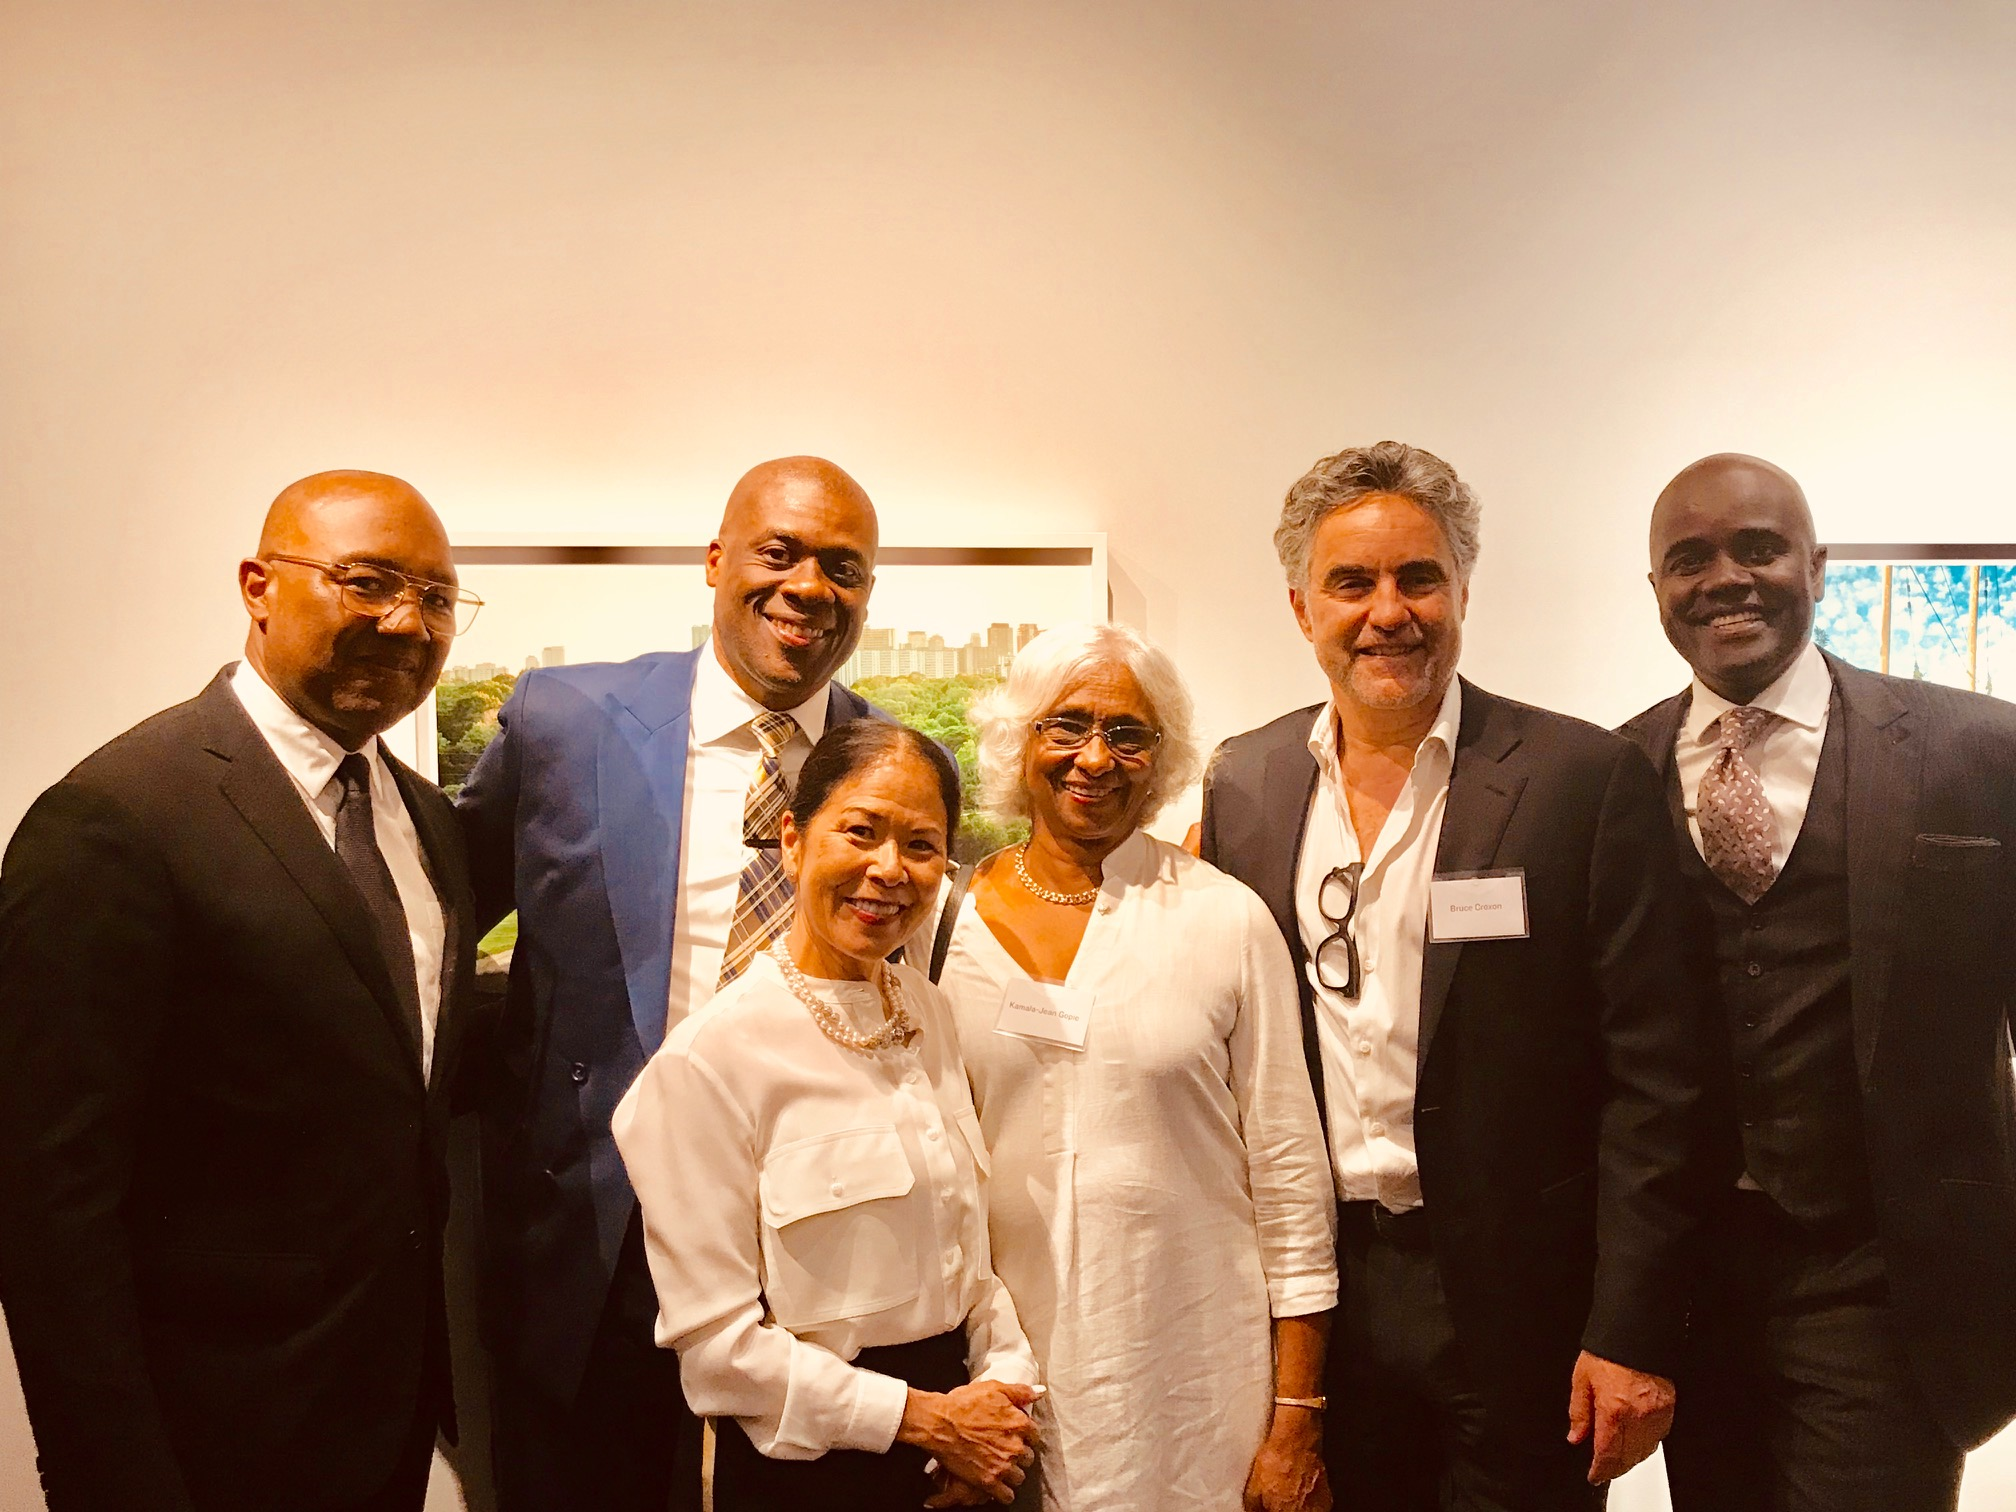 The Montgomery Collection donors include Dr. Kenneth Montague, Justice Donald McLeod, Donette Chin-Loy Chang, Kamala-Jean Gopie, Bruce Croxon and Wes Hall